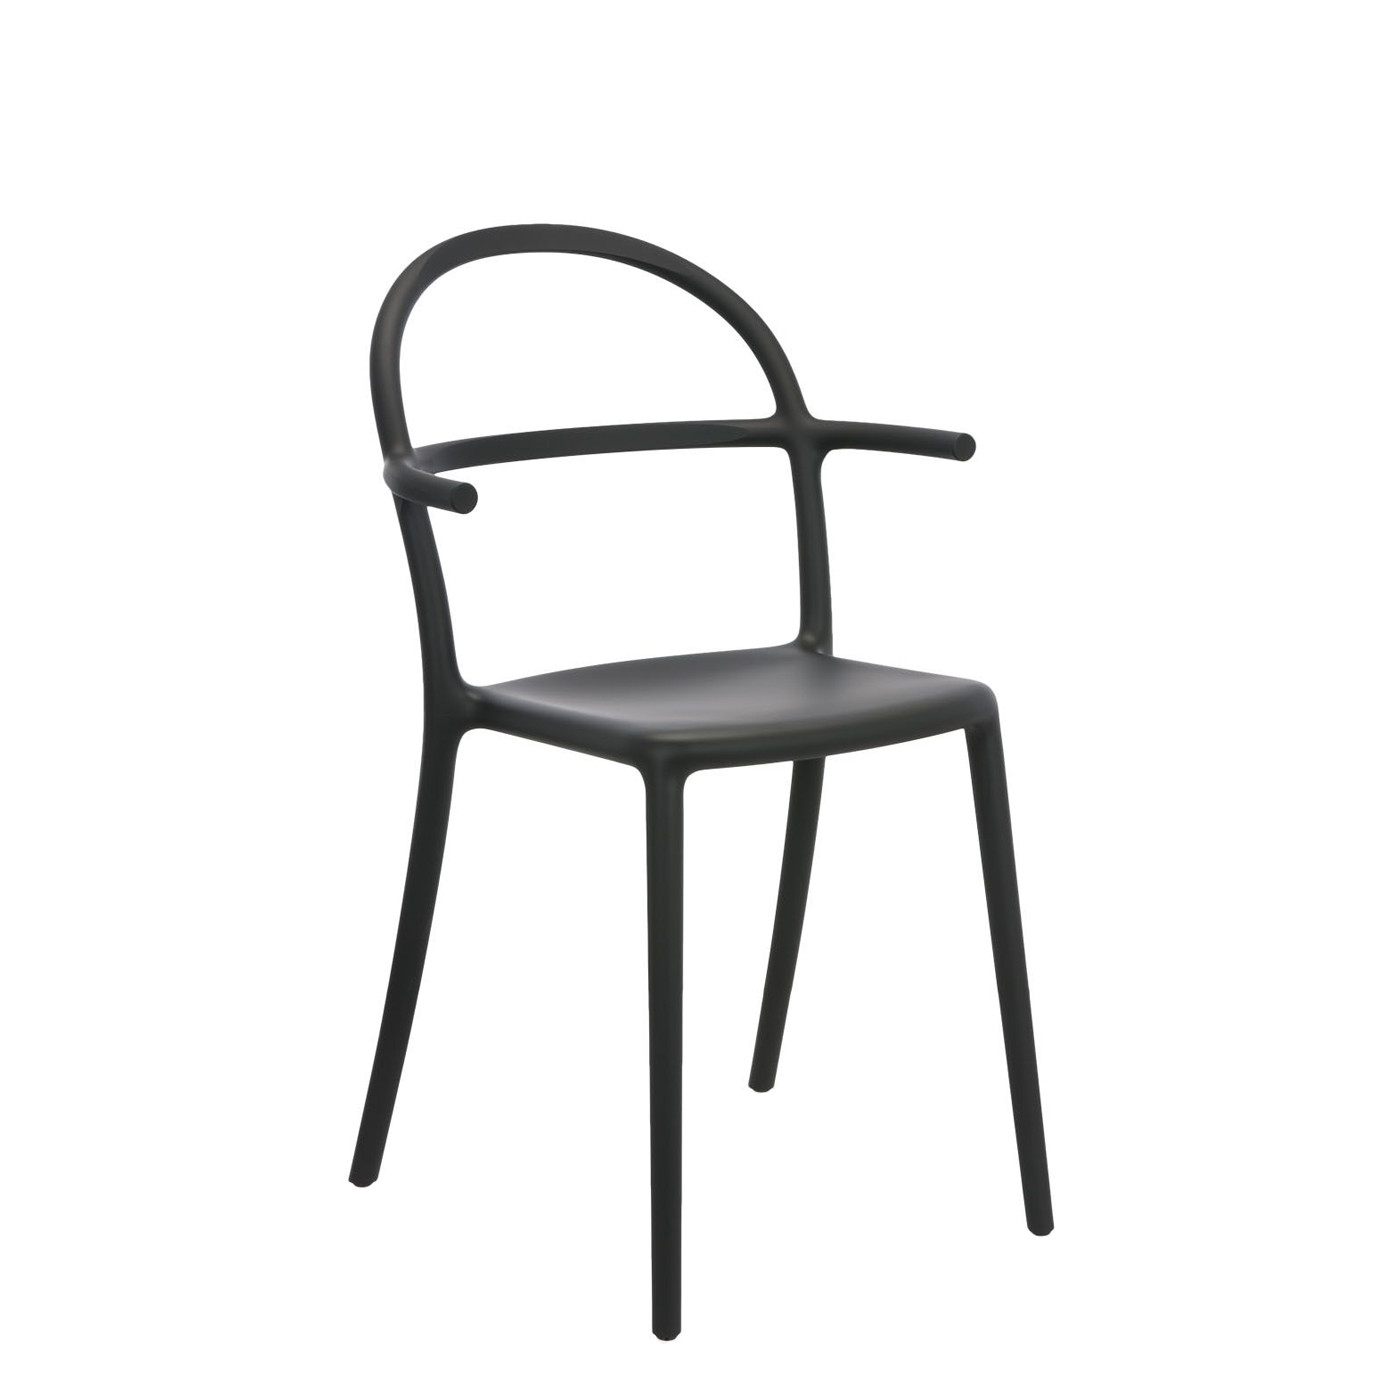 Incredible Kartell Generic C Chair Inzonedesignstudio Interior Chair Design Inzonedesignstudiocom